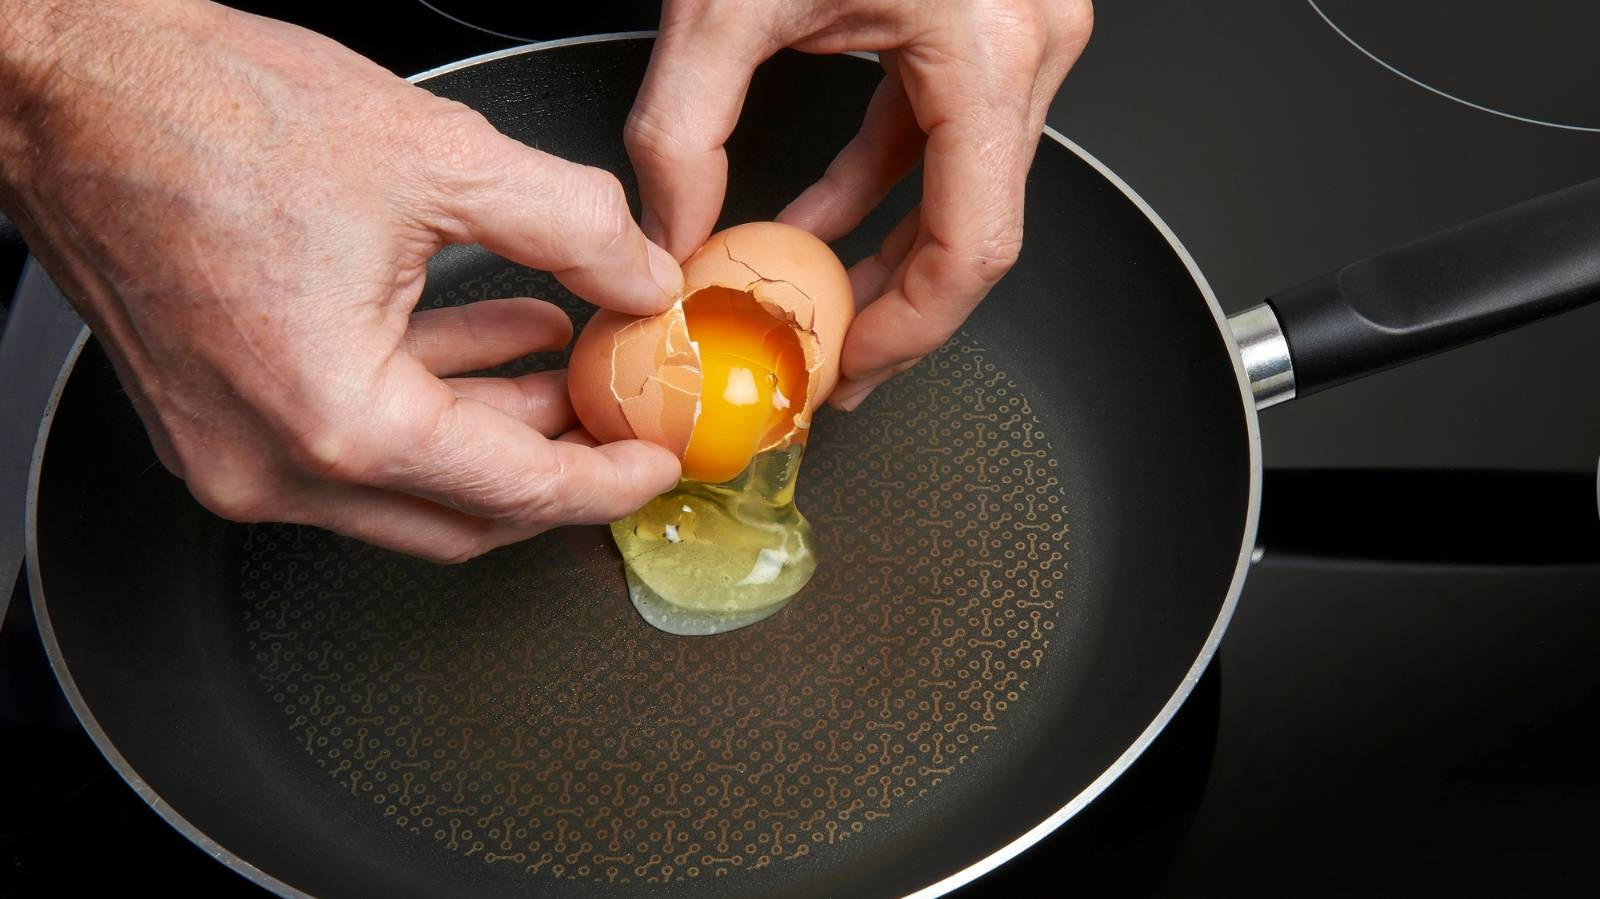 New advice for handling eggs due to Salmonella incursion